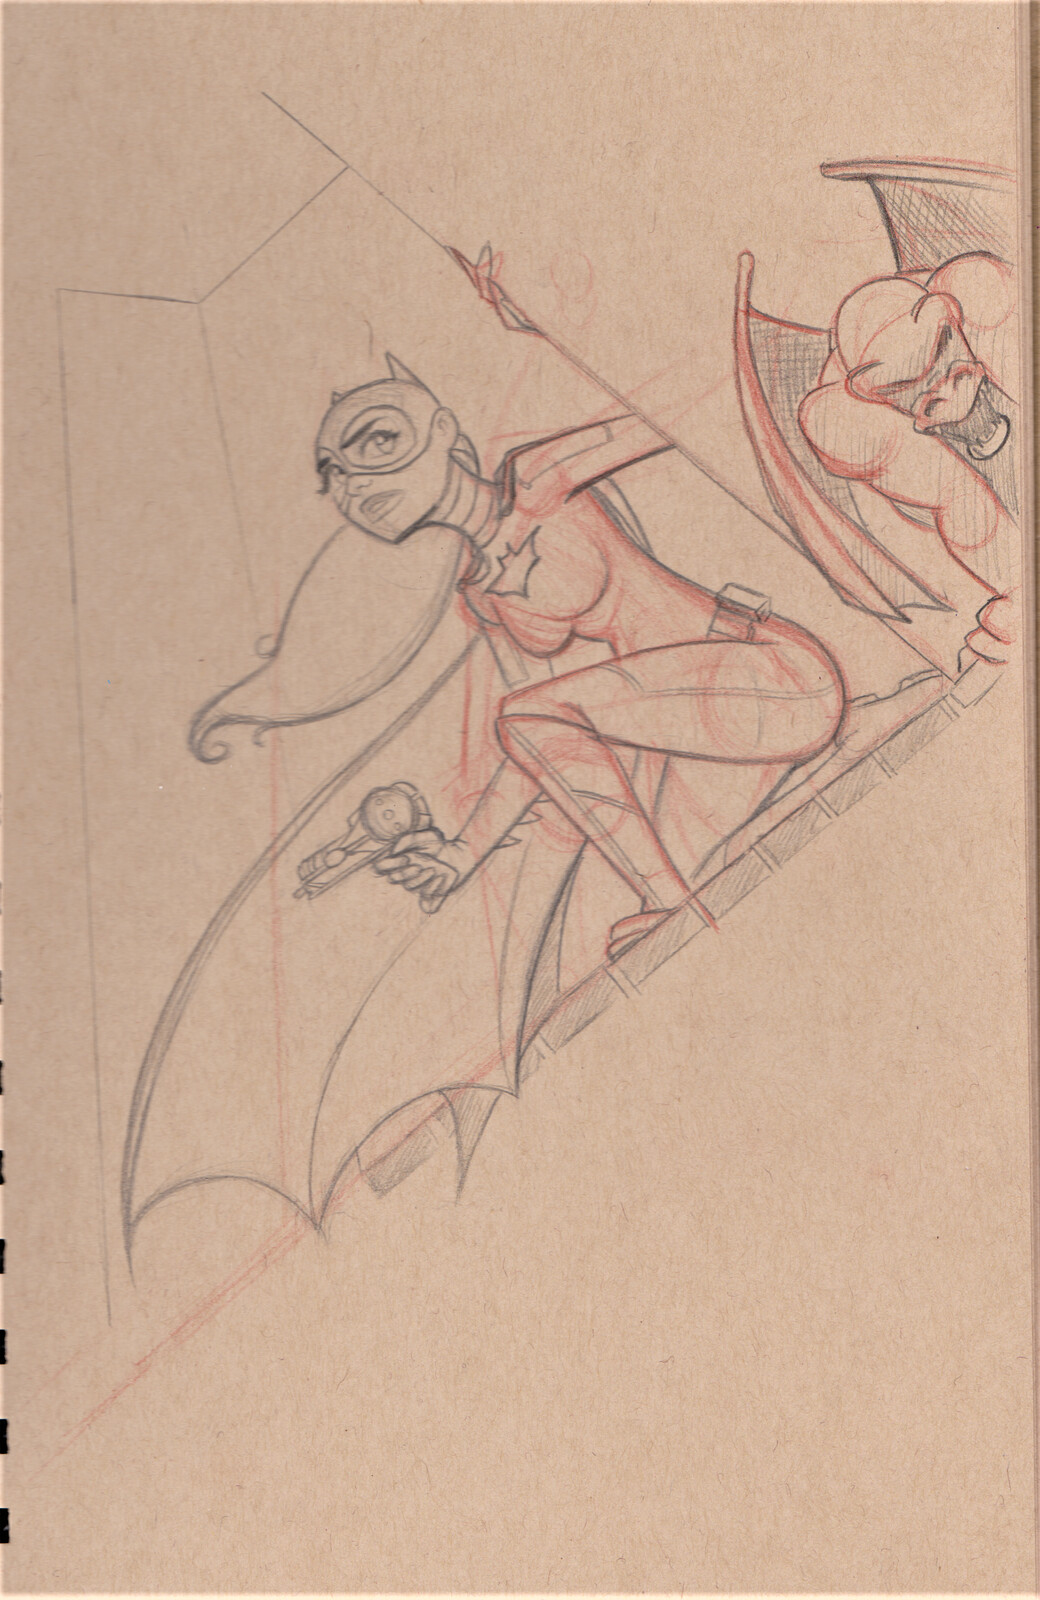 Original Batgirl sketch from 2019.